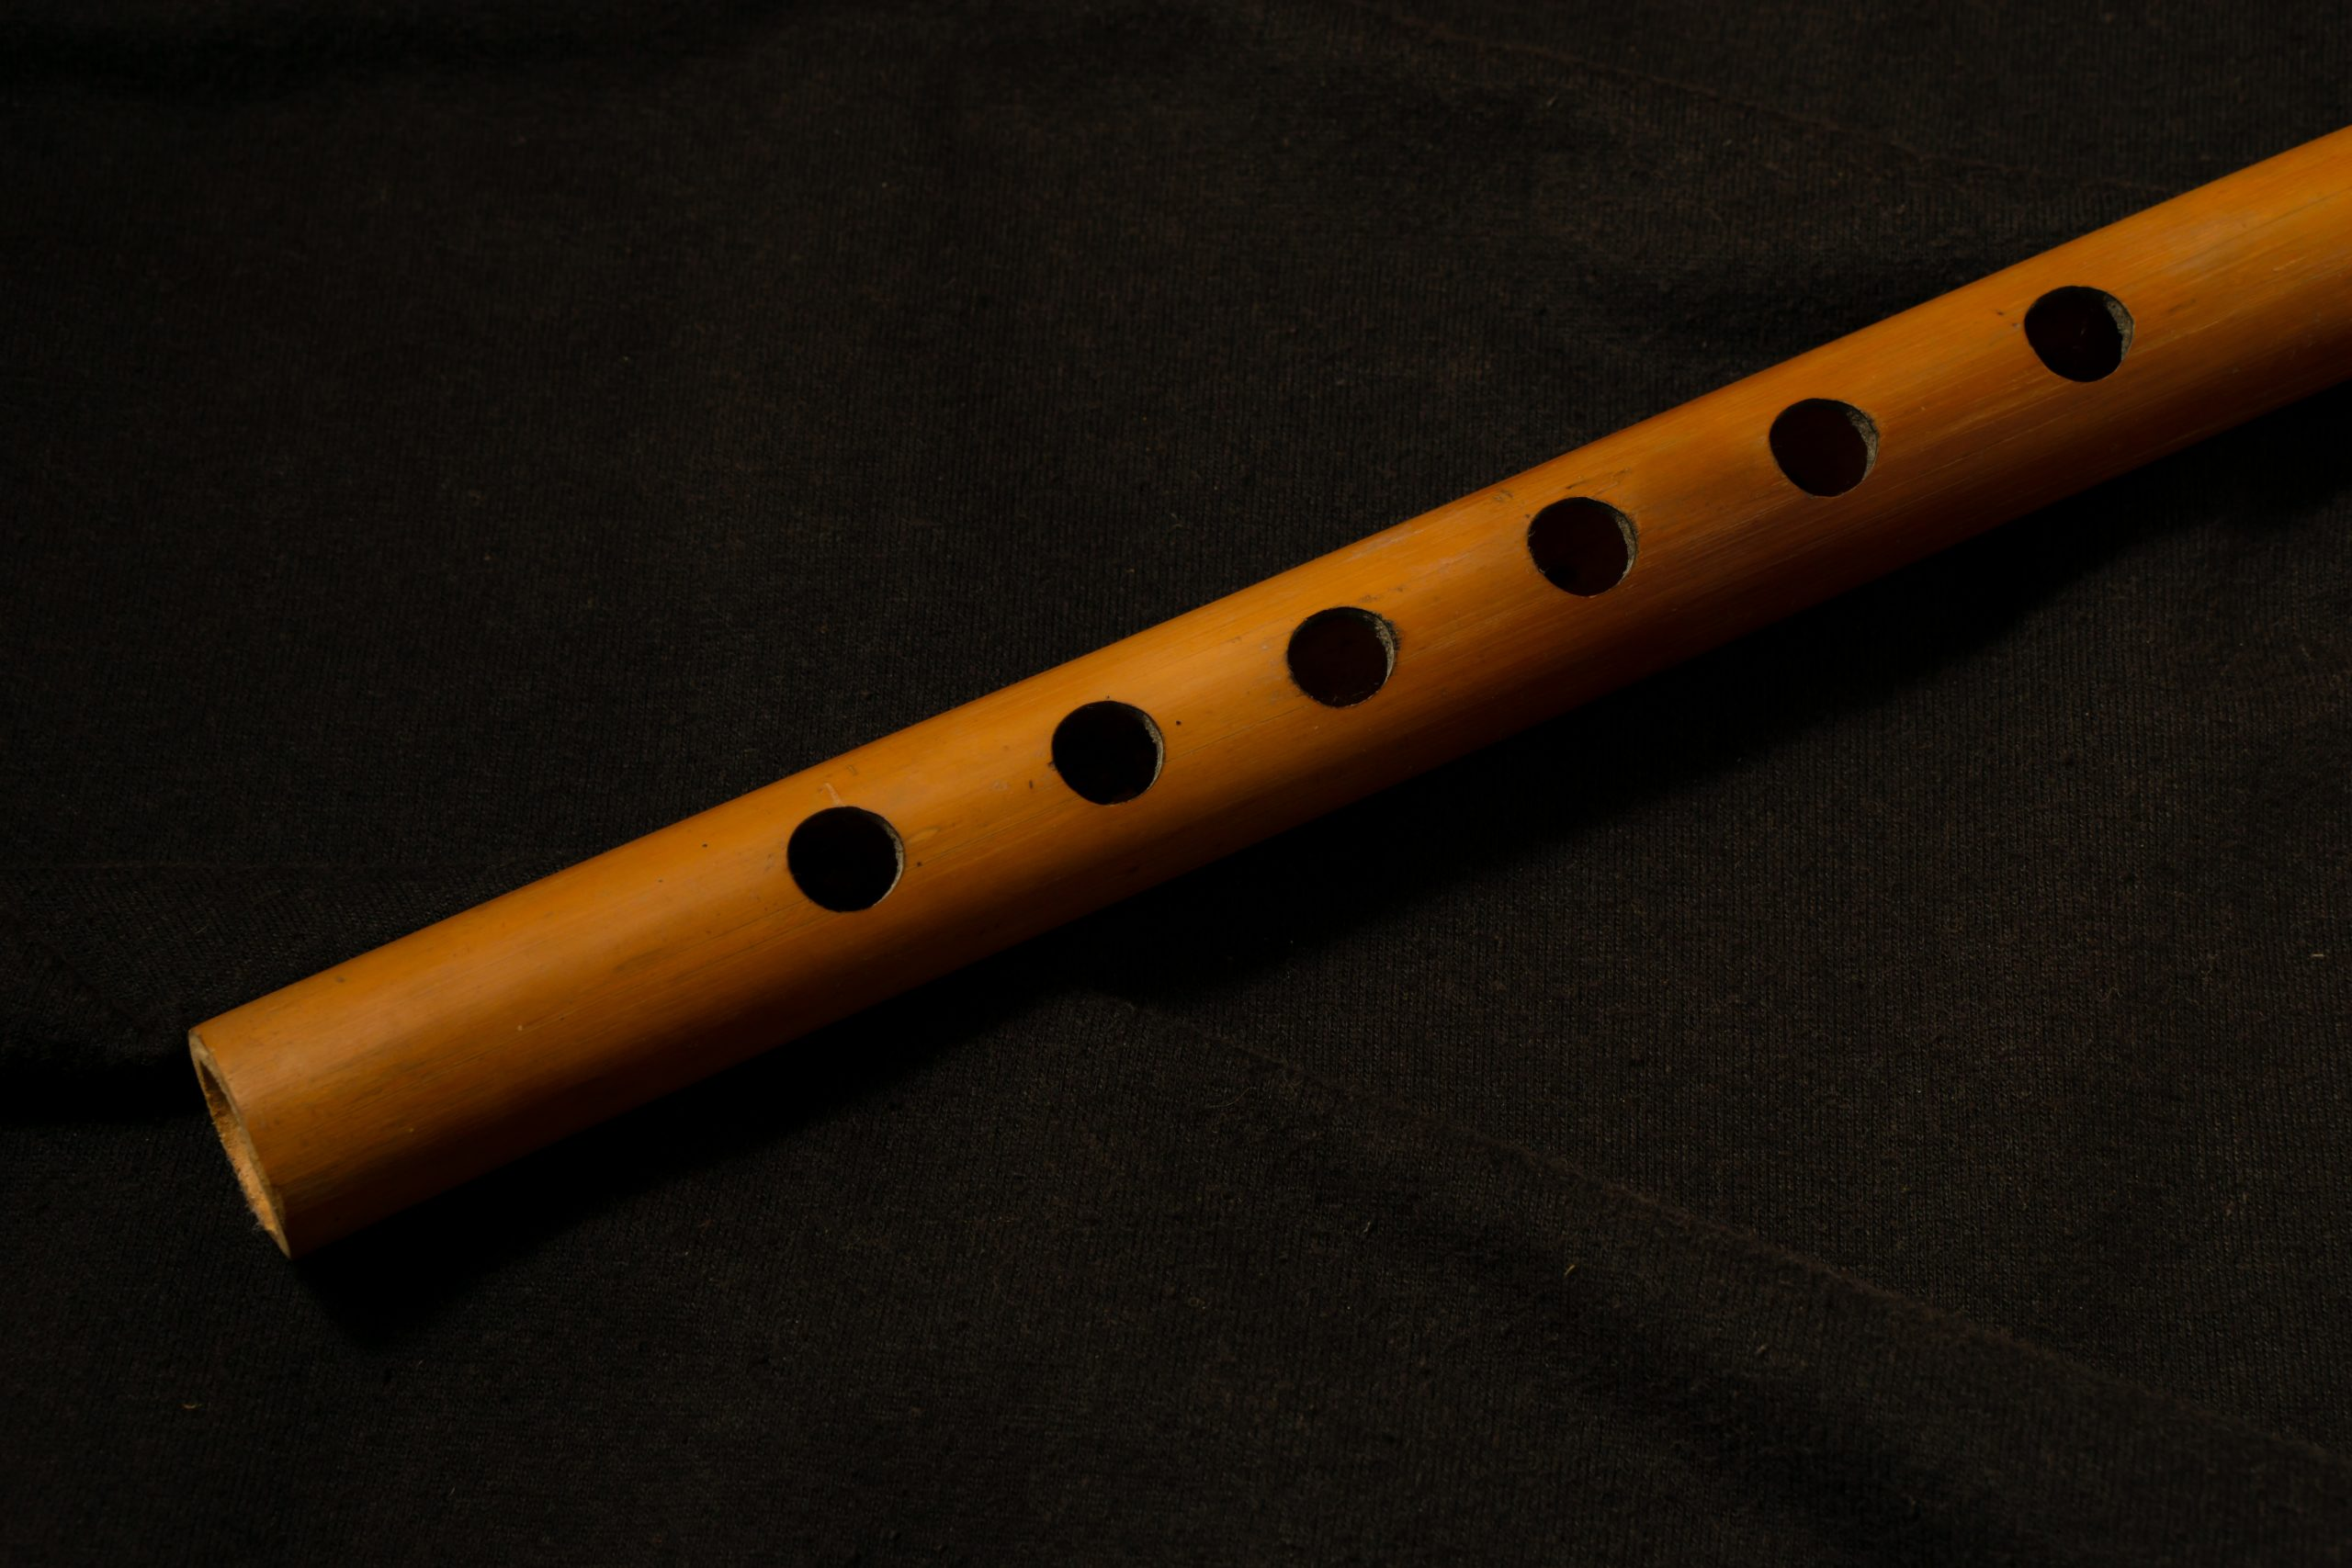 Bamboo flute on a black background